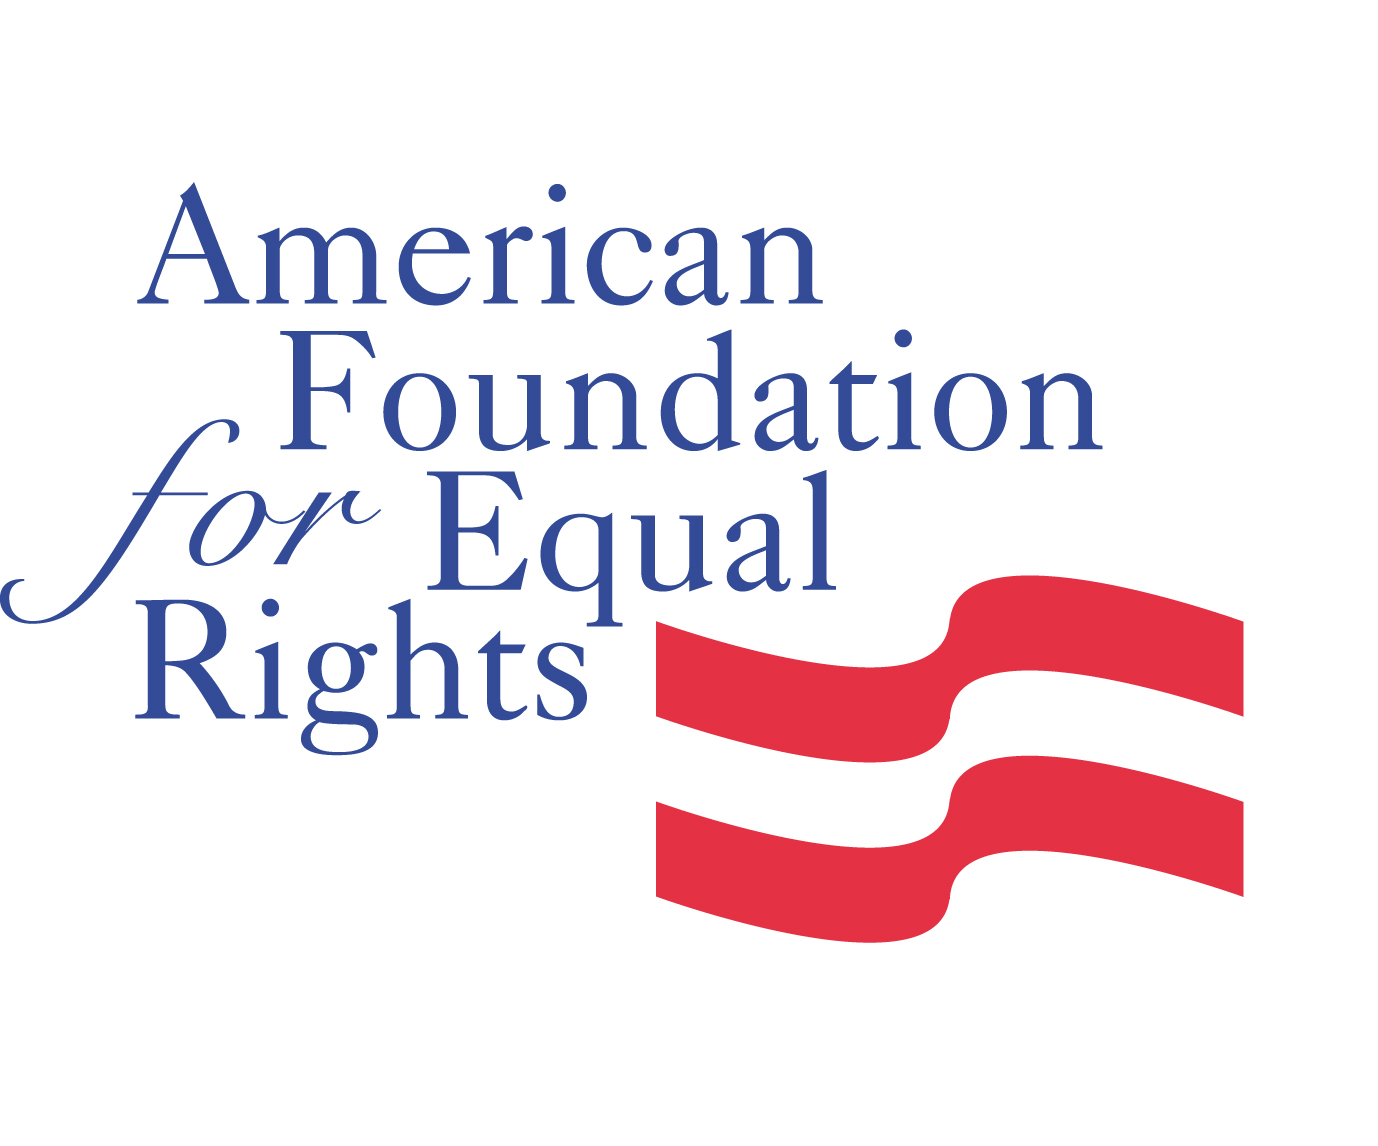 American foundation for equal rights lgbt activism american foundation for equal rights lgbt activism afer logo buycottarizona Image collections